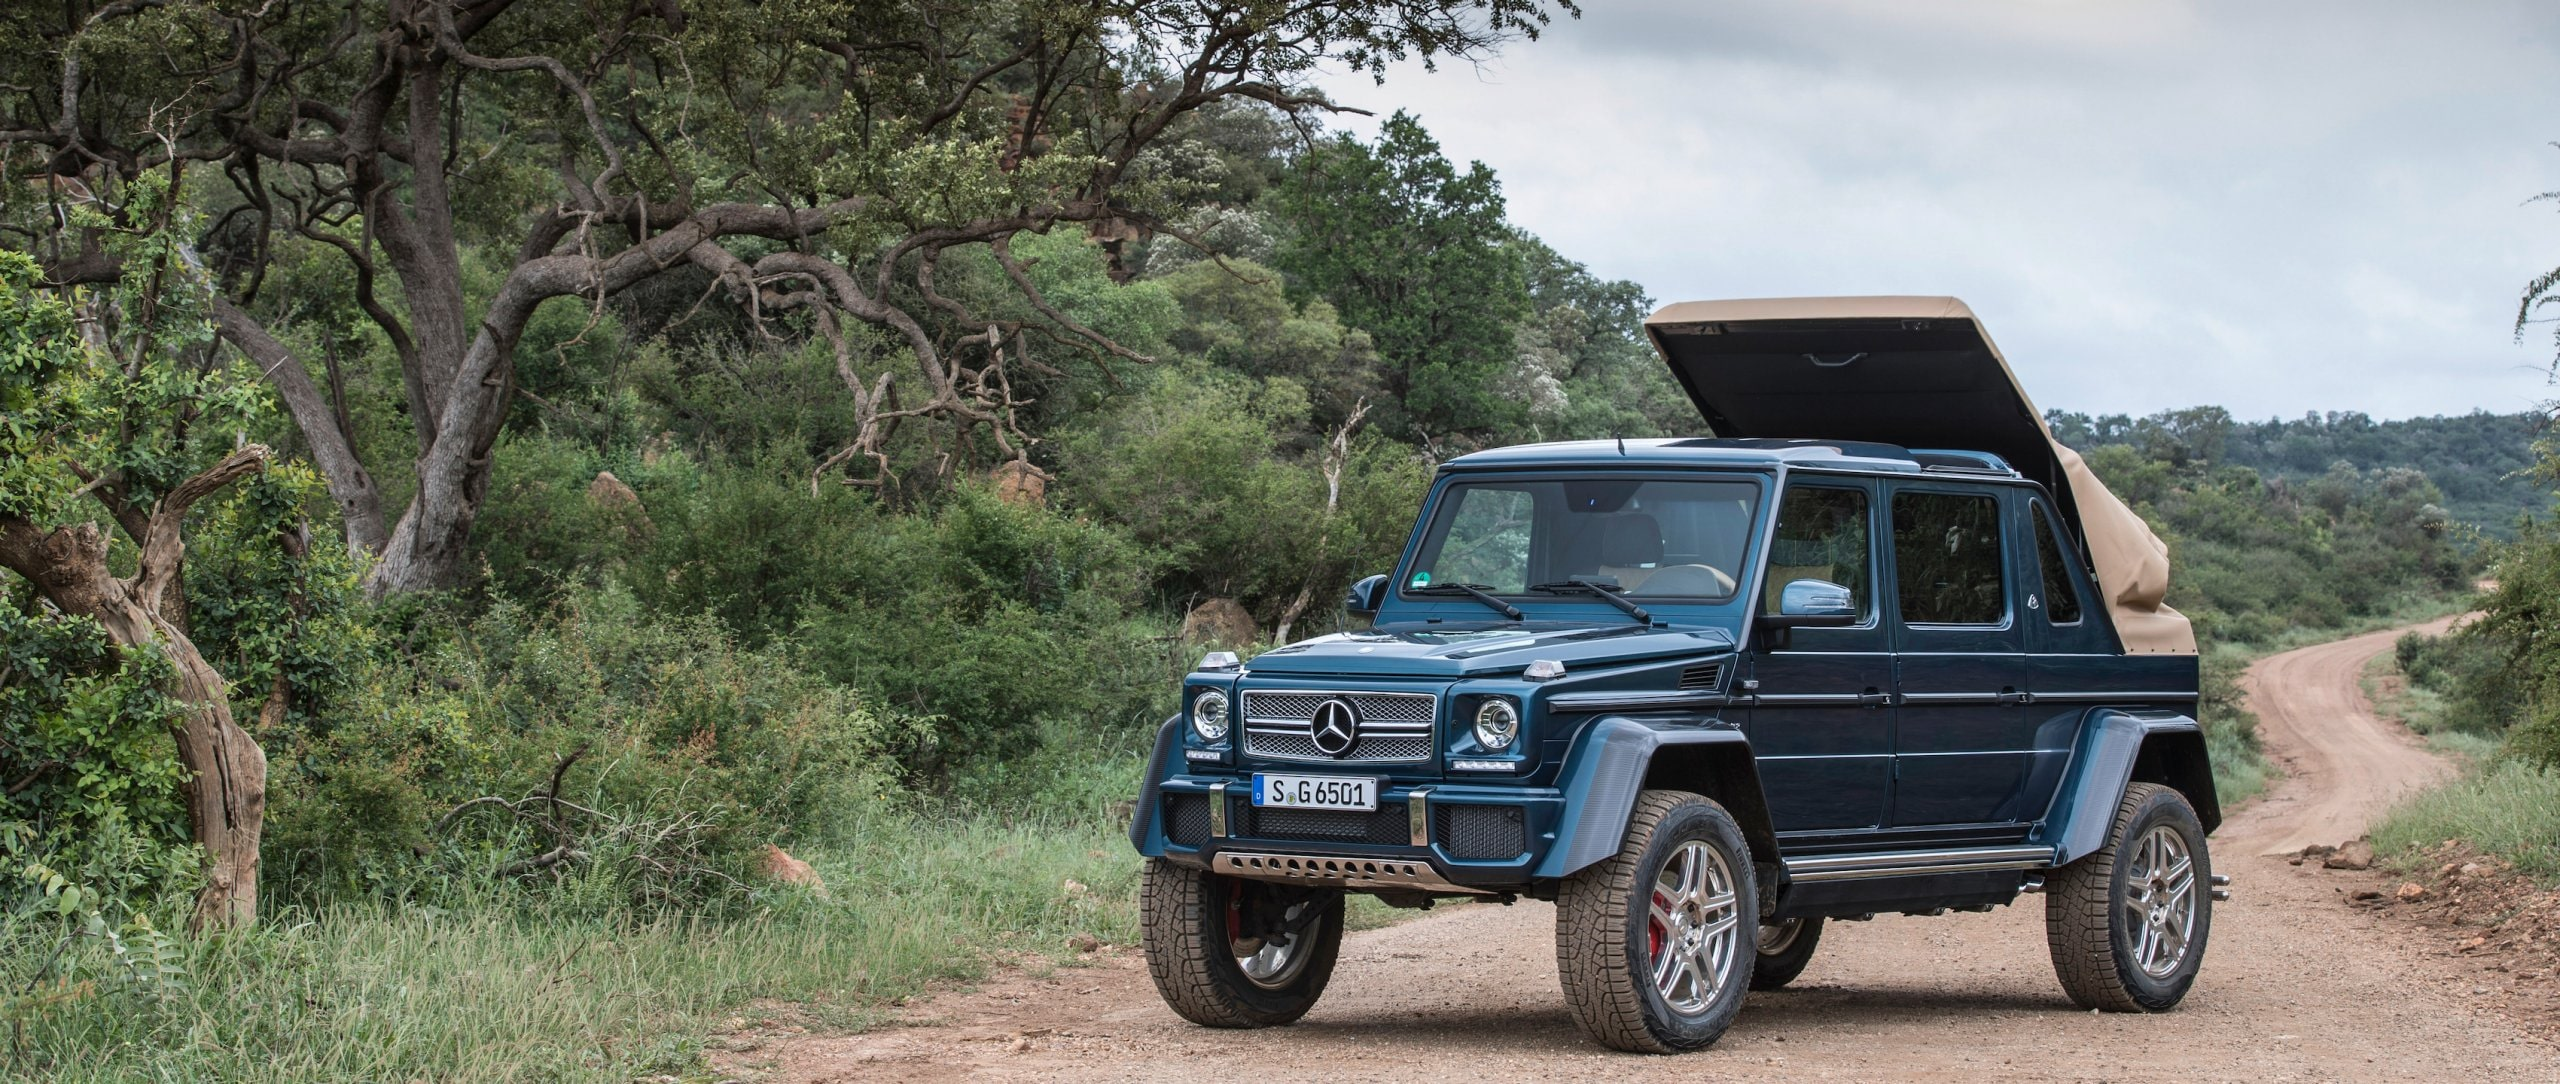 Front view of a Mercedes-Maybach G 650 Landaulet in an African landscape